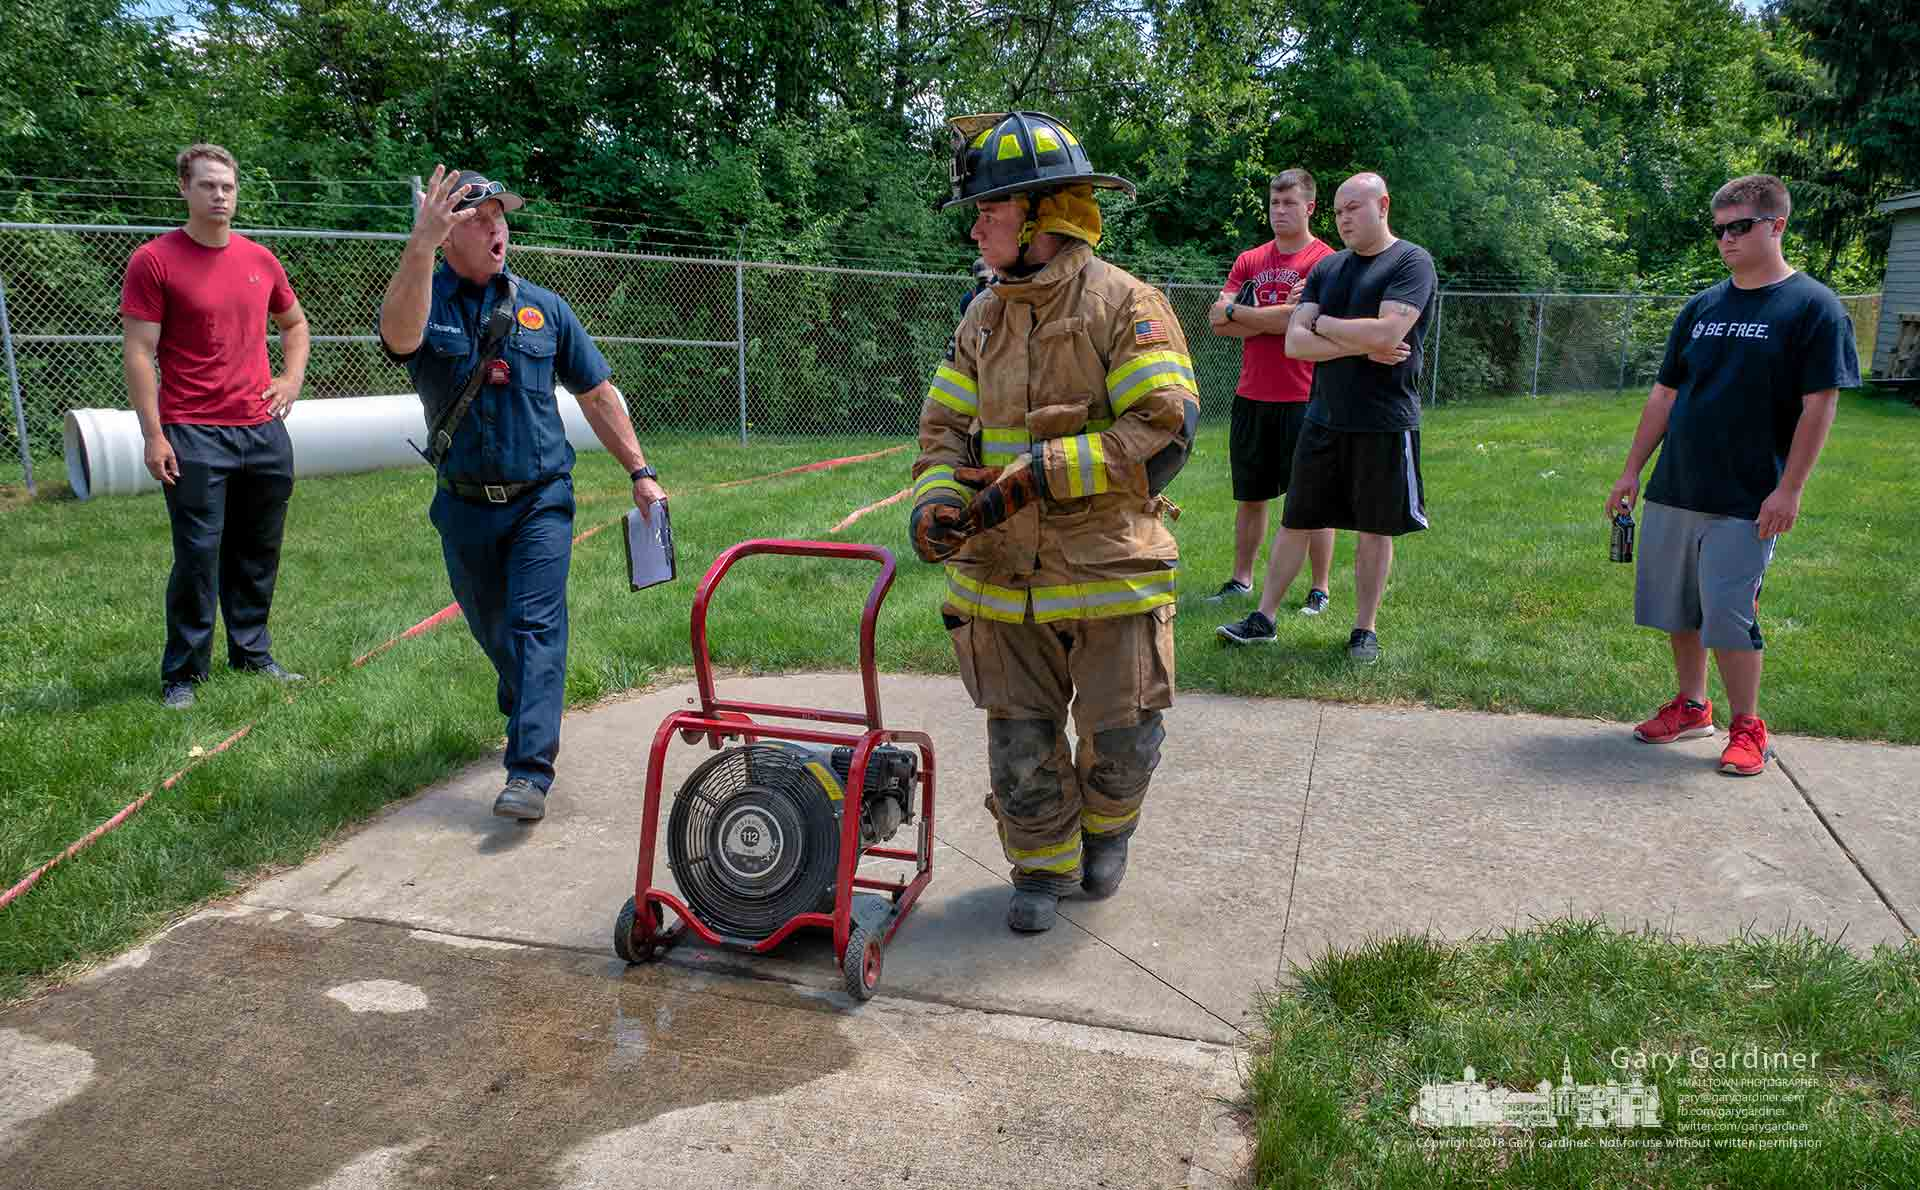 Westerville firefighters help cadets run through tactical training beginning with arriving at a fire, rescuing an injured person, and clearing the scene before their final exams. My Final Photo for June 4, 2018.